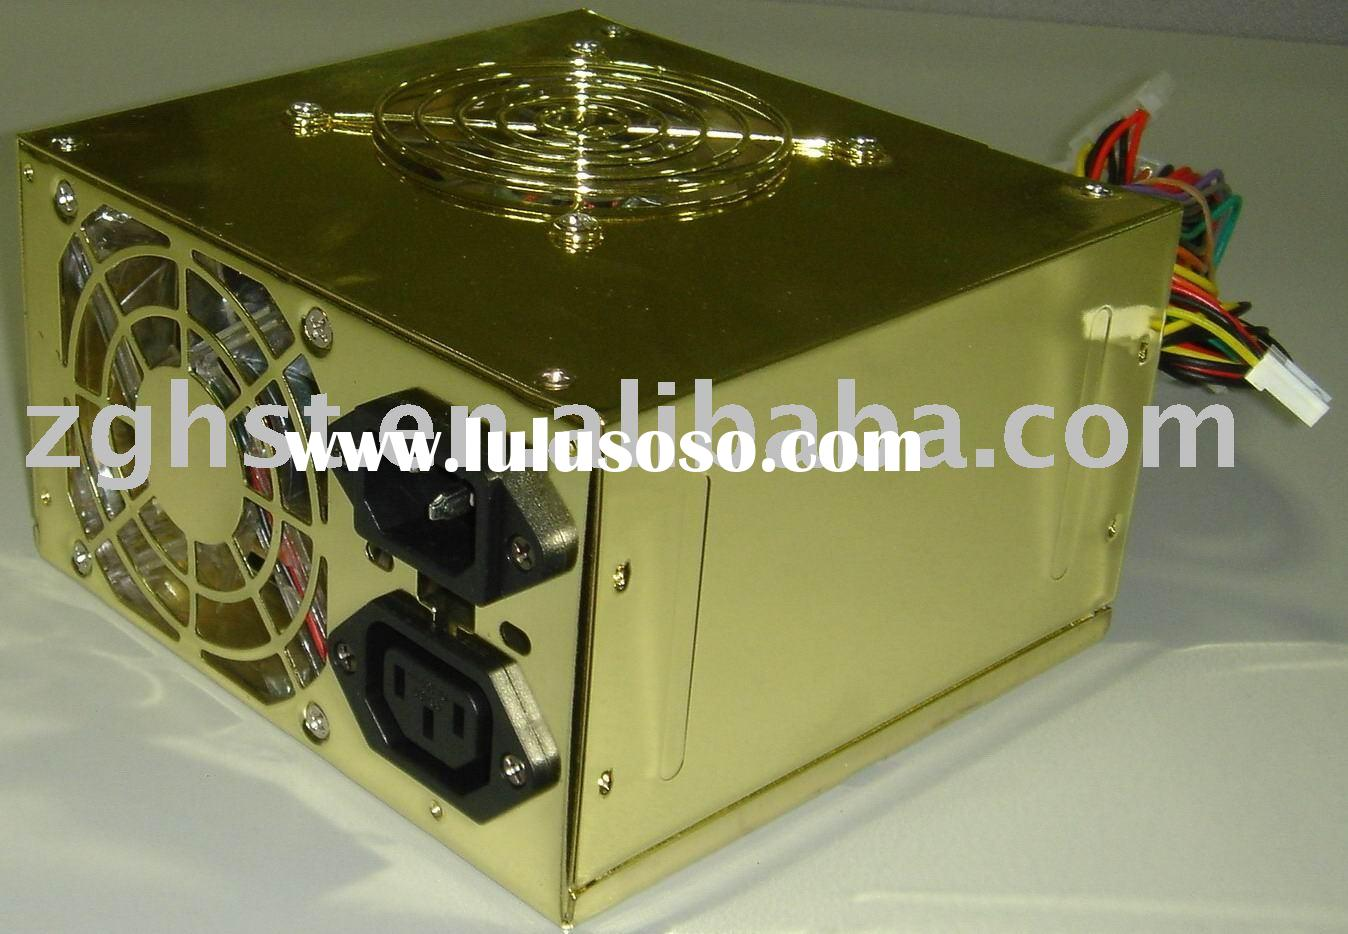 ATX switching power supply300W,PC power 300w